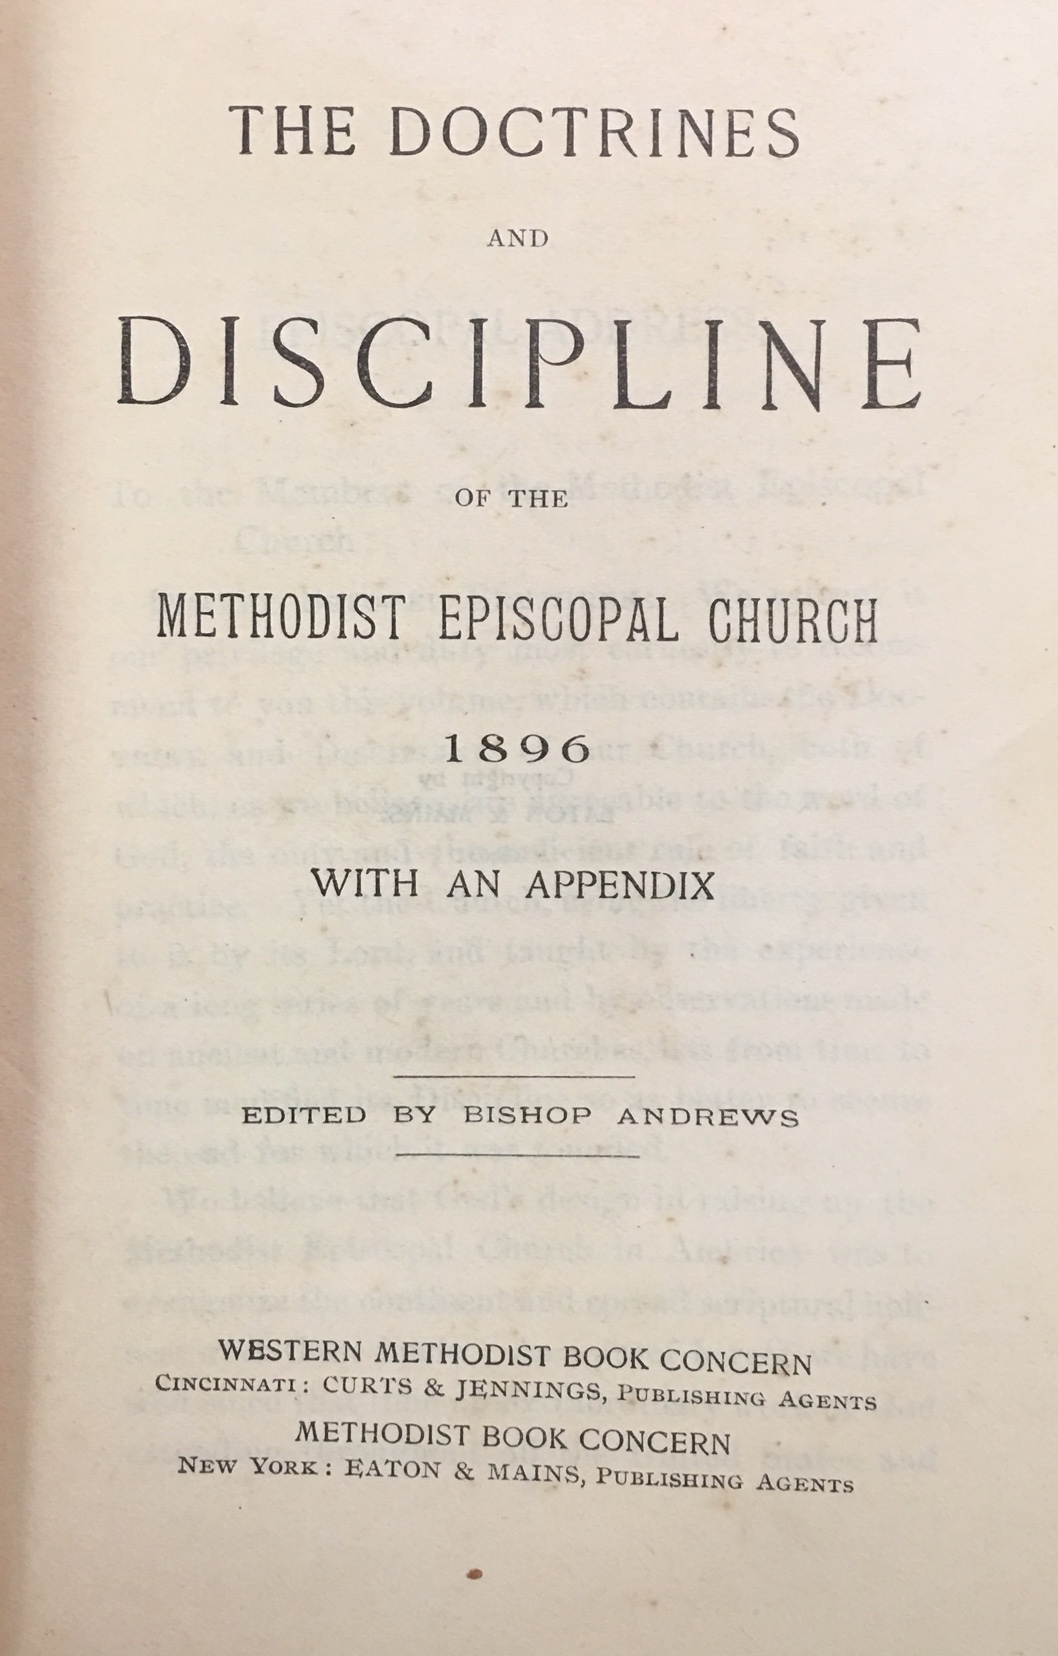 Image for The Doctrines and Discipline of the Methodist Episcopal Church 1896, with an Appendix